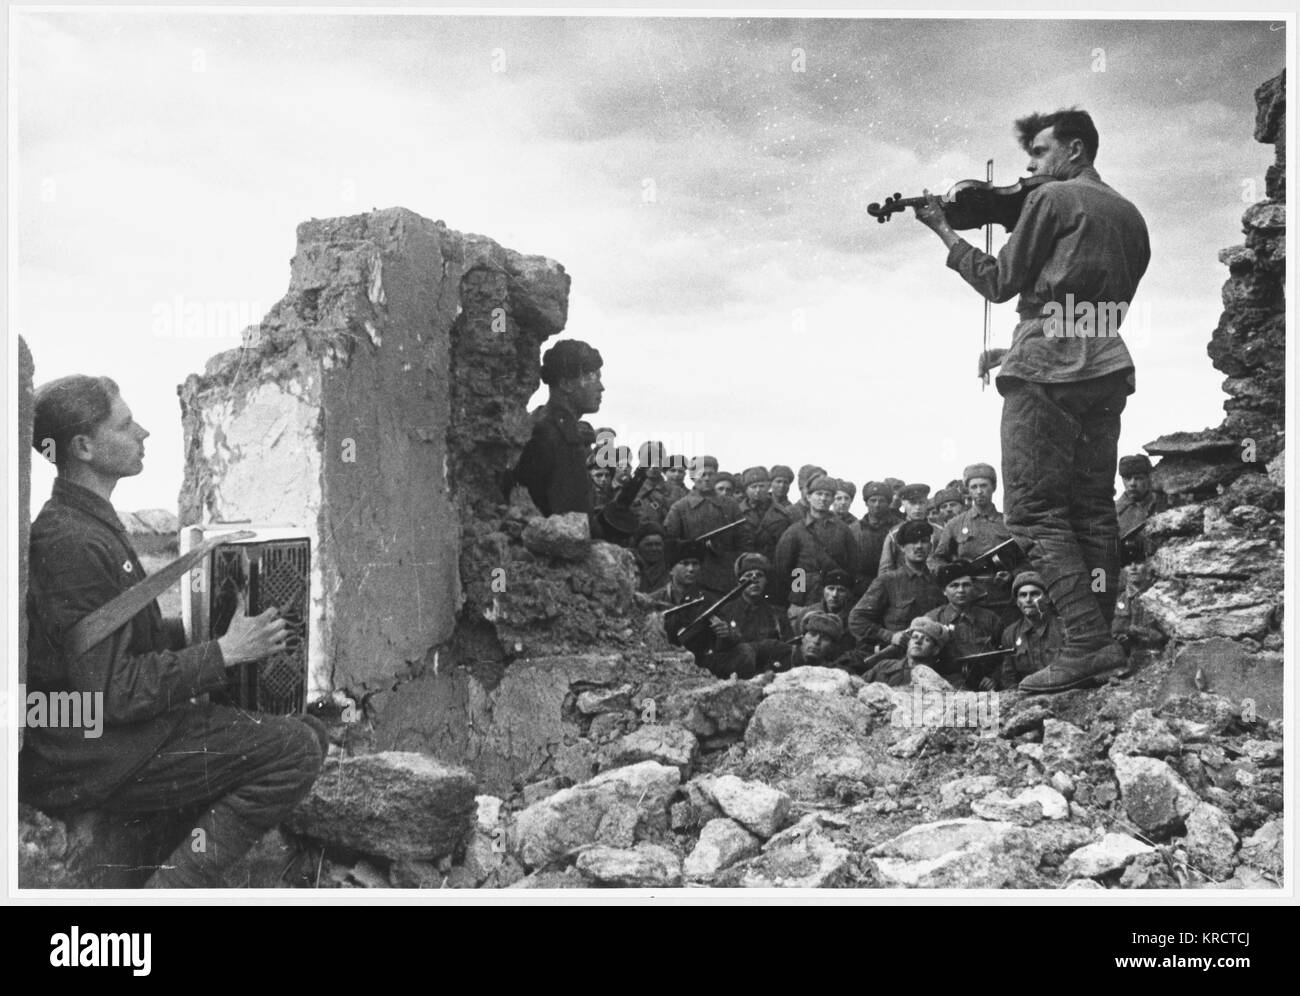 A musical interlude for Soviet soldiers amoung the ruins. Soldiers play the accordion and the violin. Date: 1942 - Stock Image